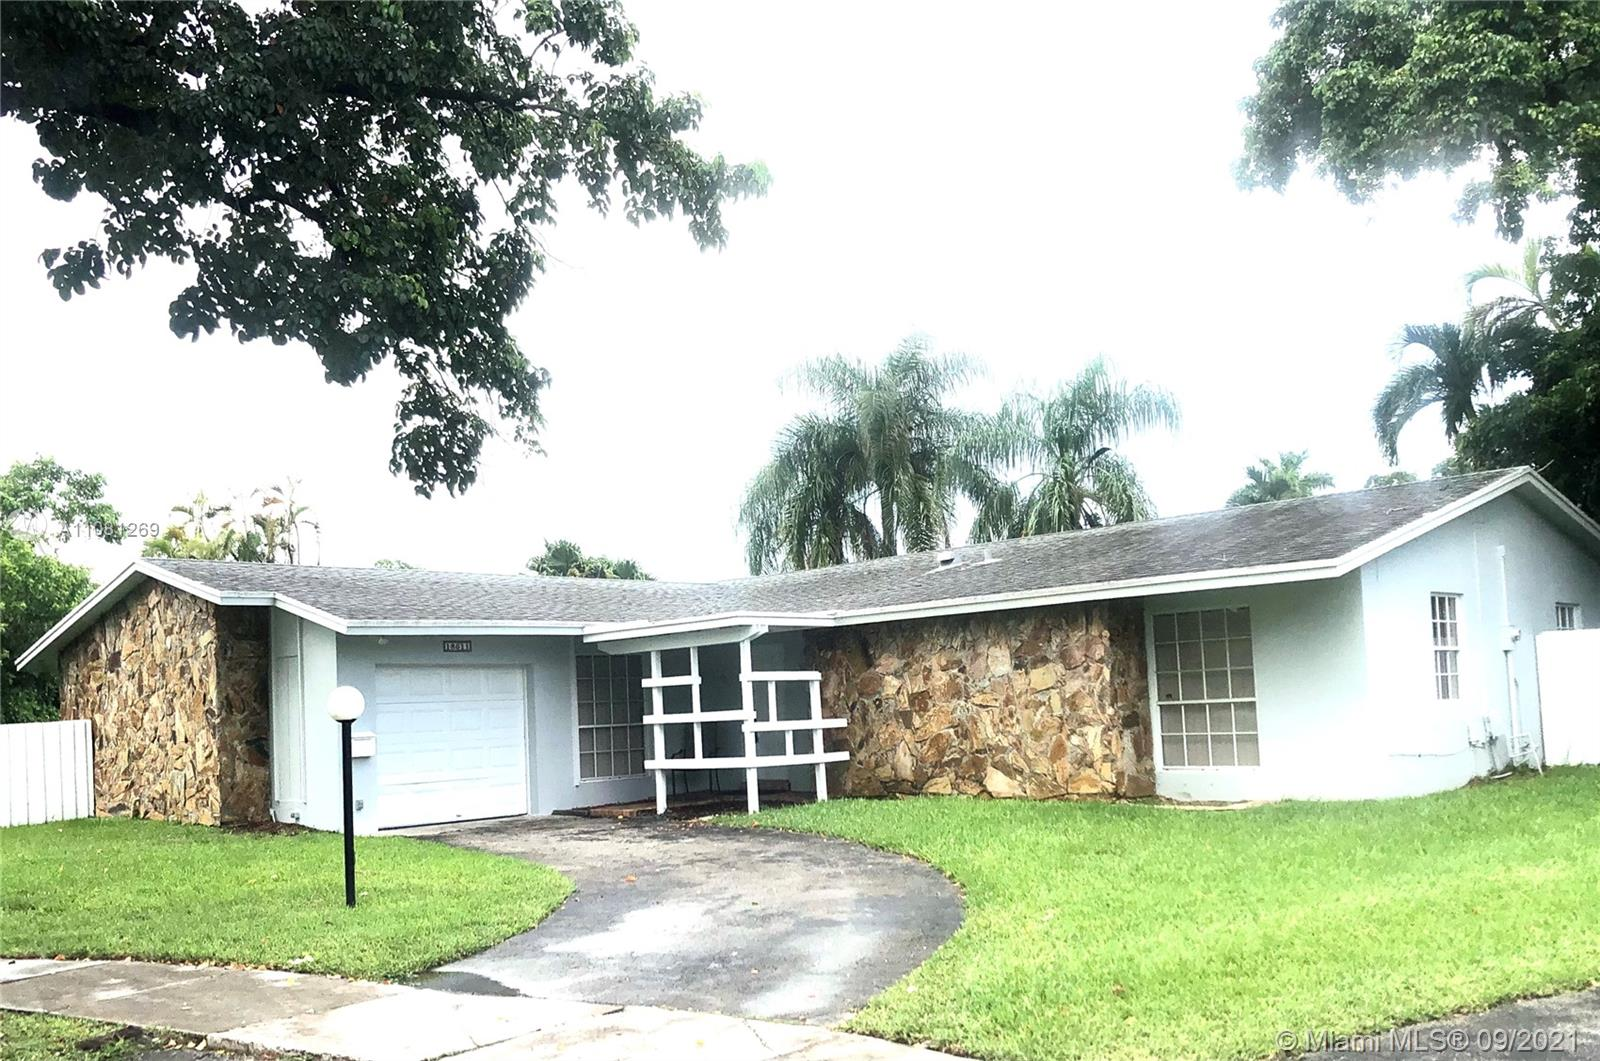 VERY SPACIOUS 1-STORY, 3/2 BEL-AIRE POOL HOME WITH 1 CAR GARAGE ON LARGE FULLLY FENCED LOT.  CUL-DE-SAC LOCATION SO THERE IS NO THROUGH TRAFFIC! ENJOY THE POOL AREA WHICH IS PERFECT FOR ENTERTAINING!  NOTE: LAWN AND POOL MAINTENANCE INCLUDED IN THE RENT!  OWNER REQUIRES GOOD CREDIT AND VERIFIABLE EMPLOYMENT.